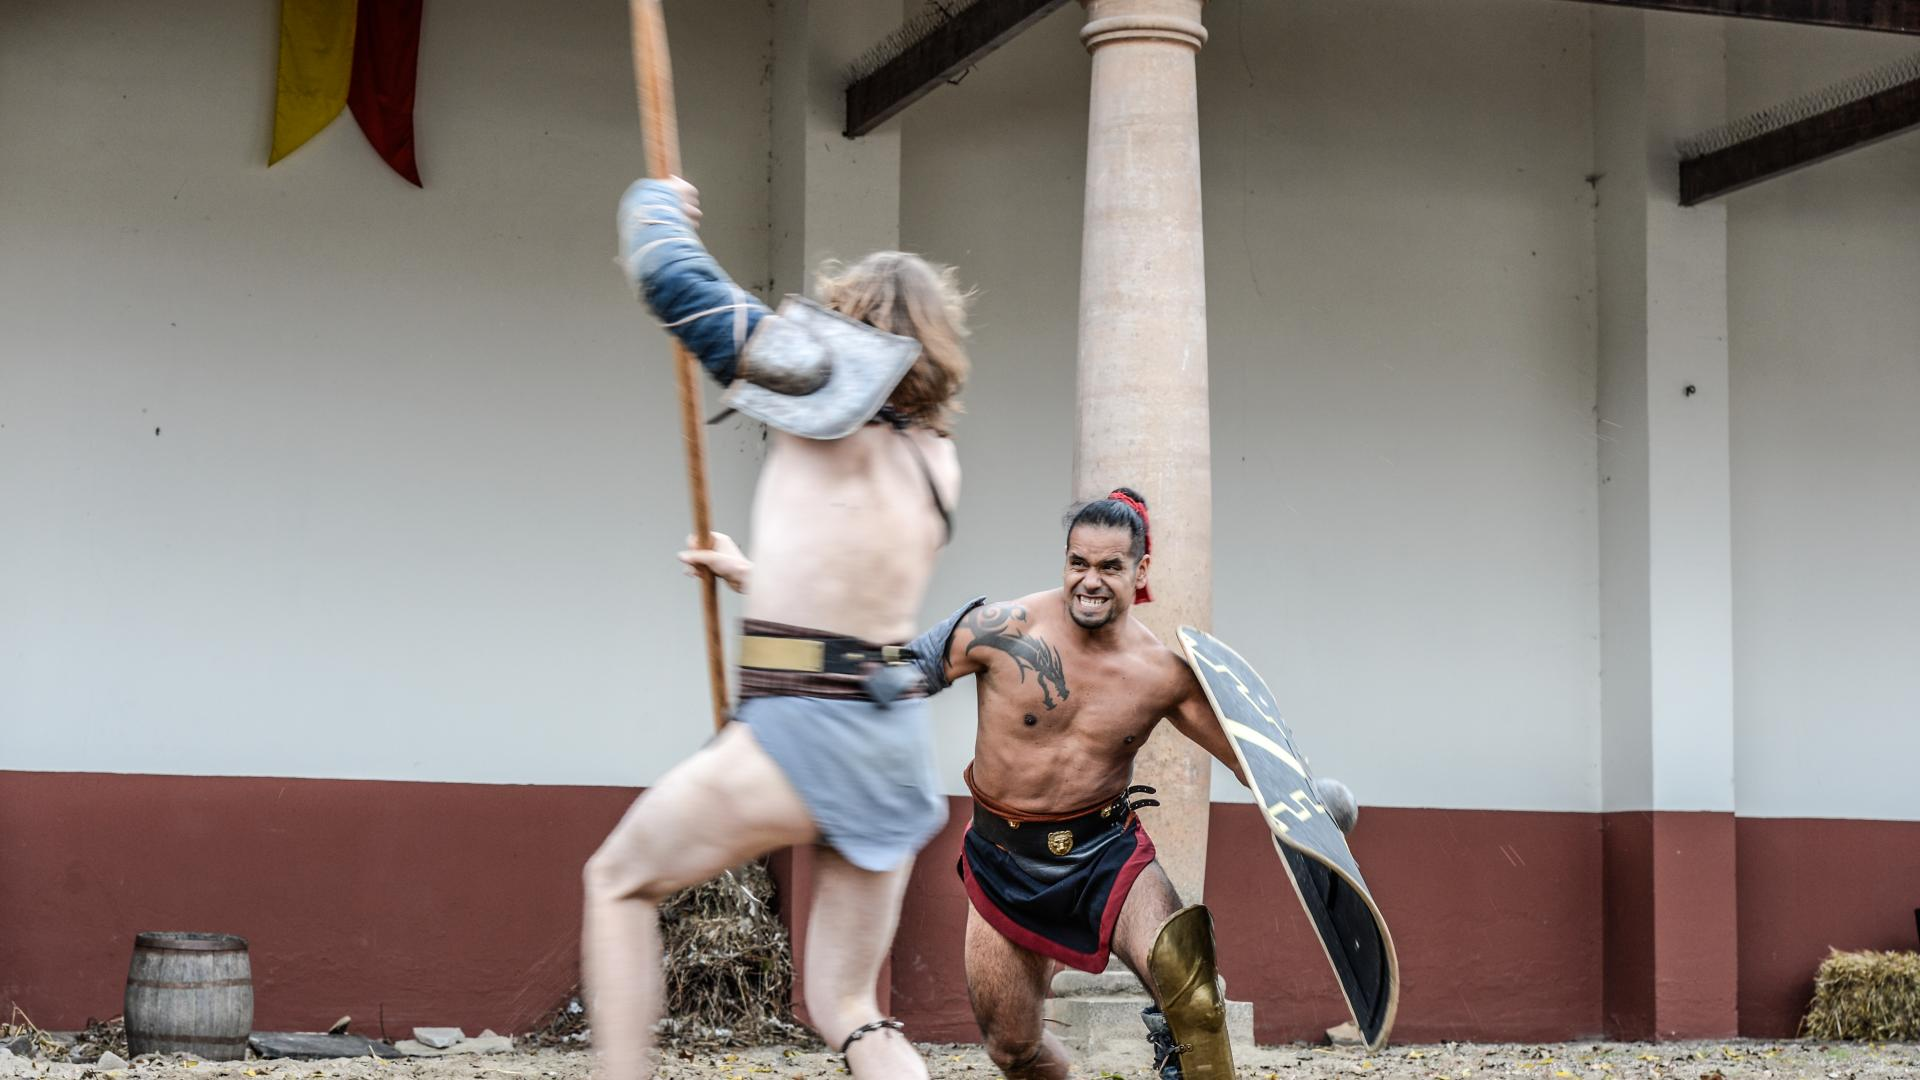 Gladiatorfight